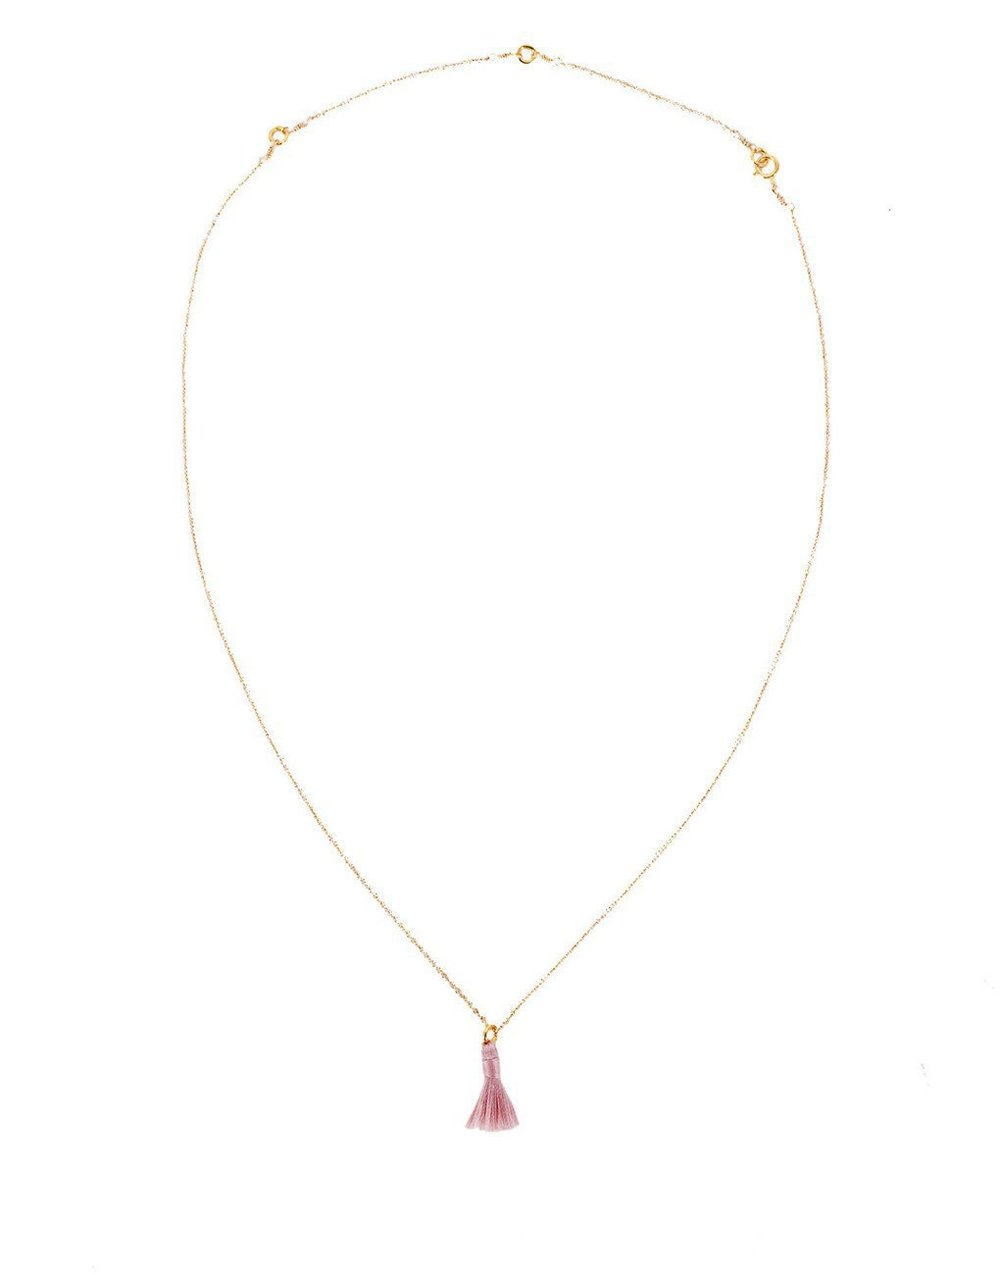 THE LITTLE MARKET   Tiny Tassel Necklace - Mauve